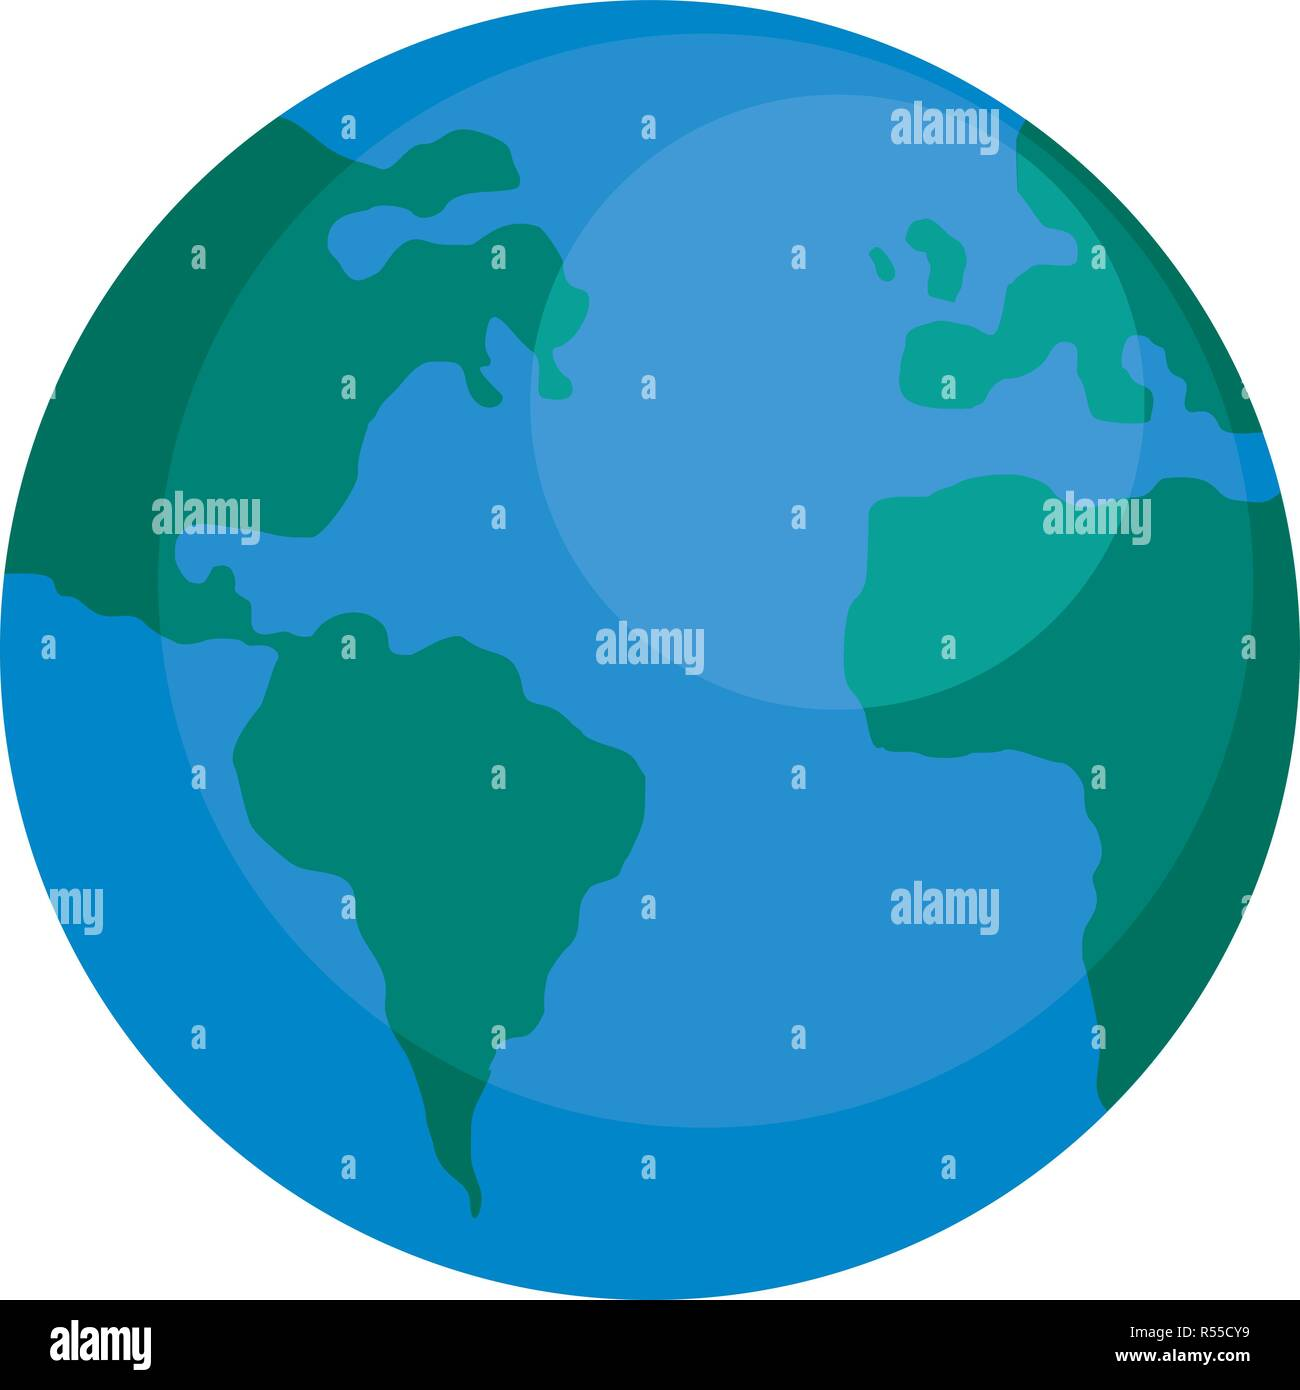 Flat Earth Map Stock Photos Flat Earth Map Stock Images Alamy